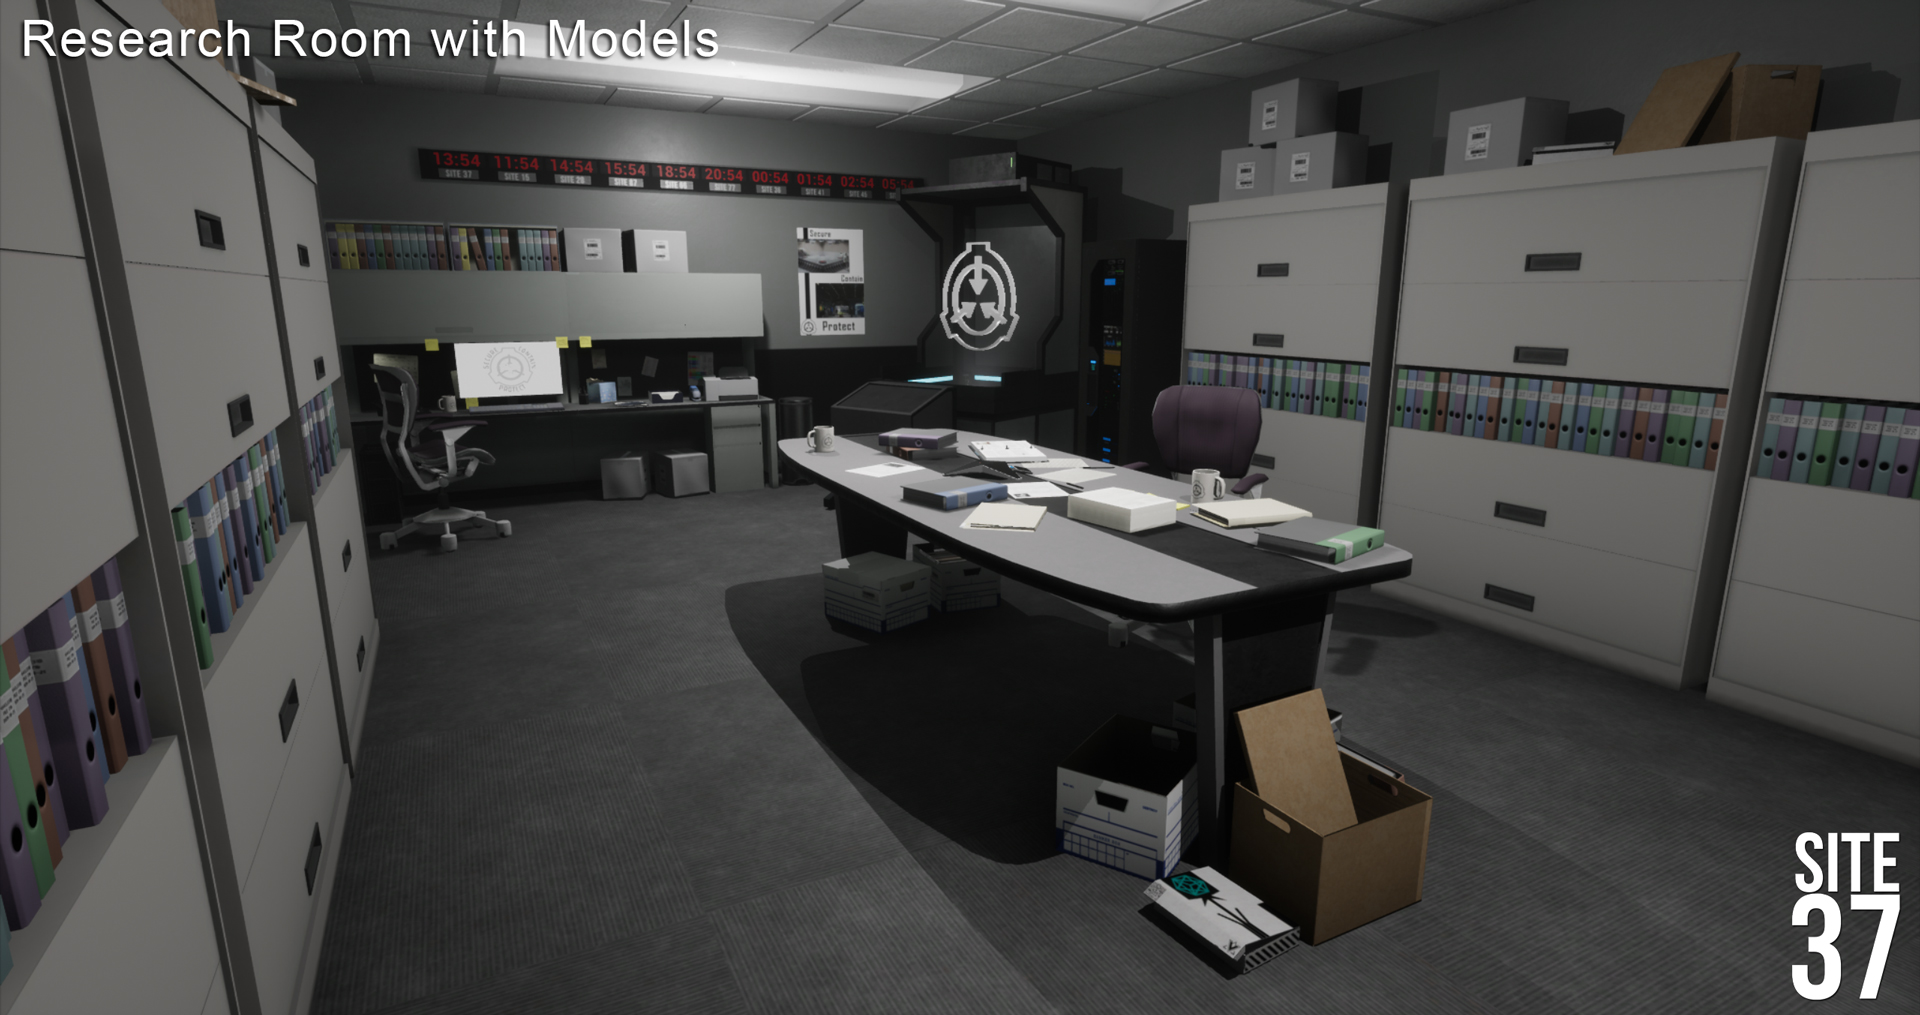 Research Room with Models